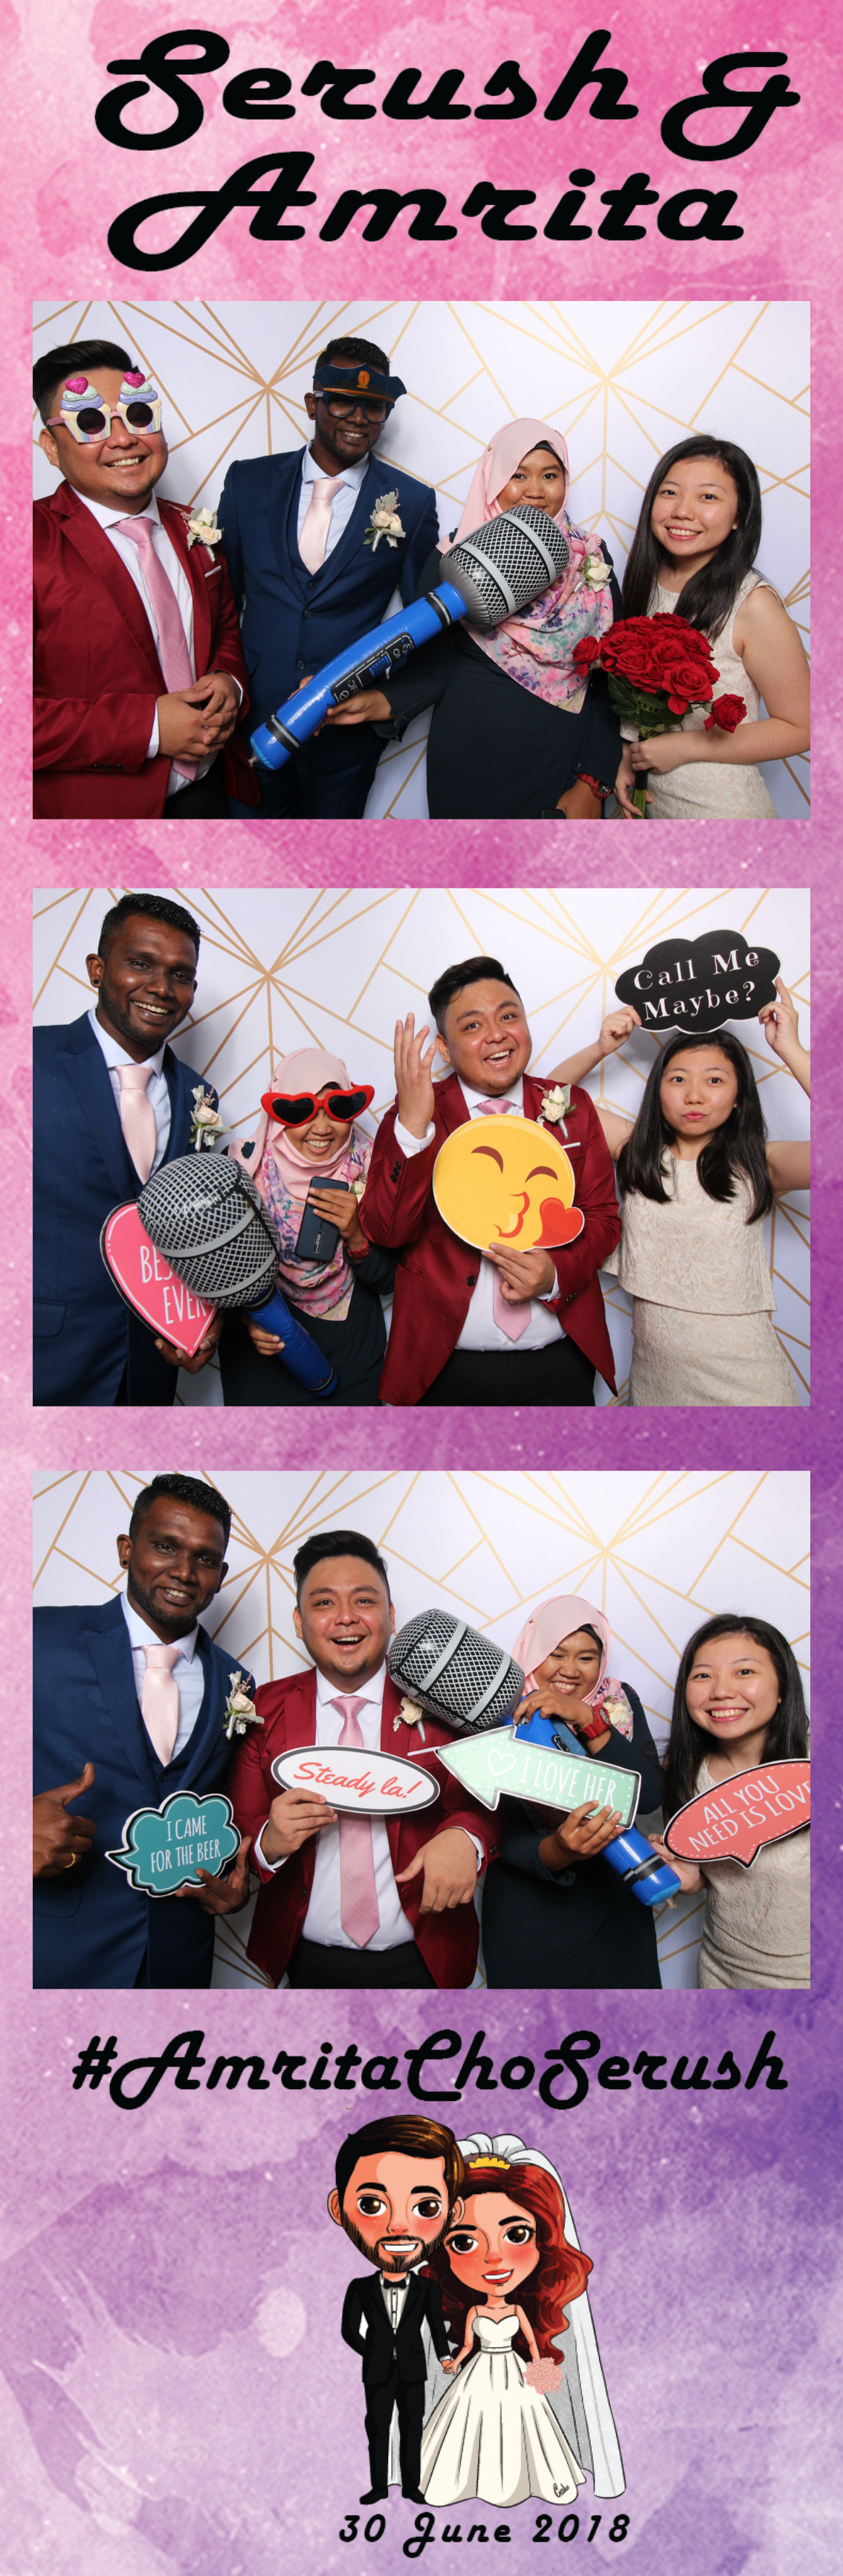 whoots photo booth singapore wedding (1